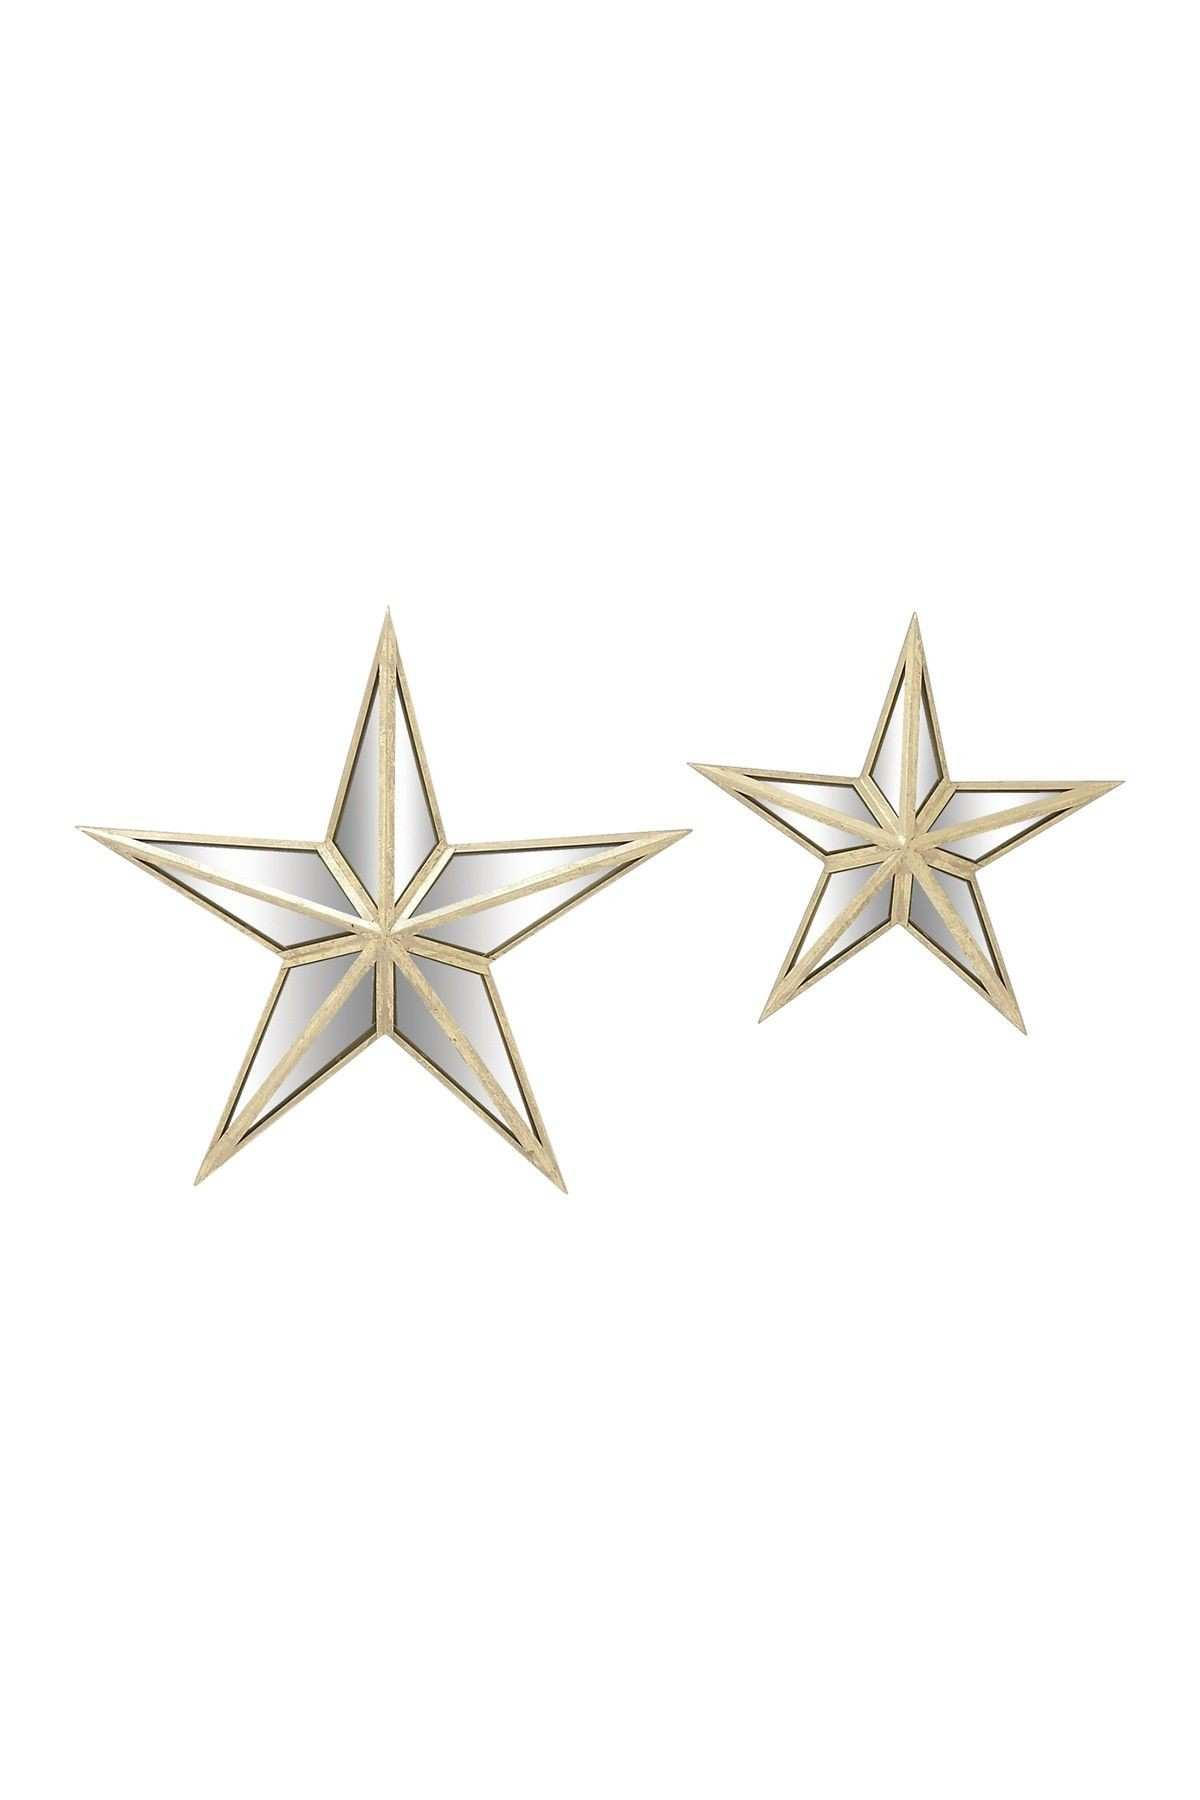 Attractive Metal Star Wall Art Frieze Wall Decoration Ideas